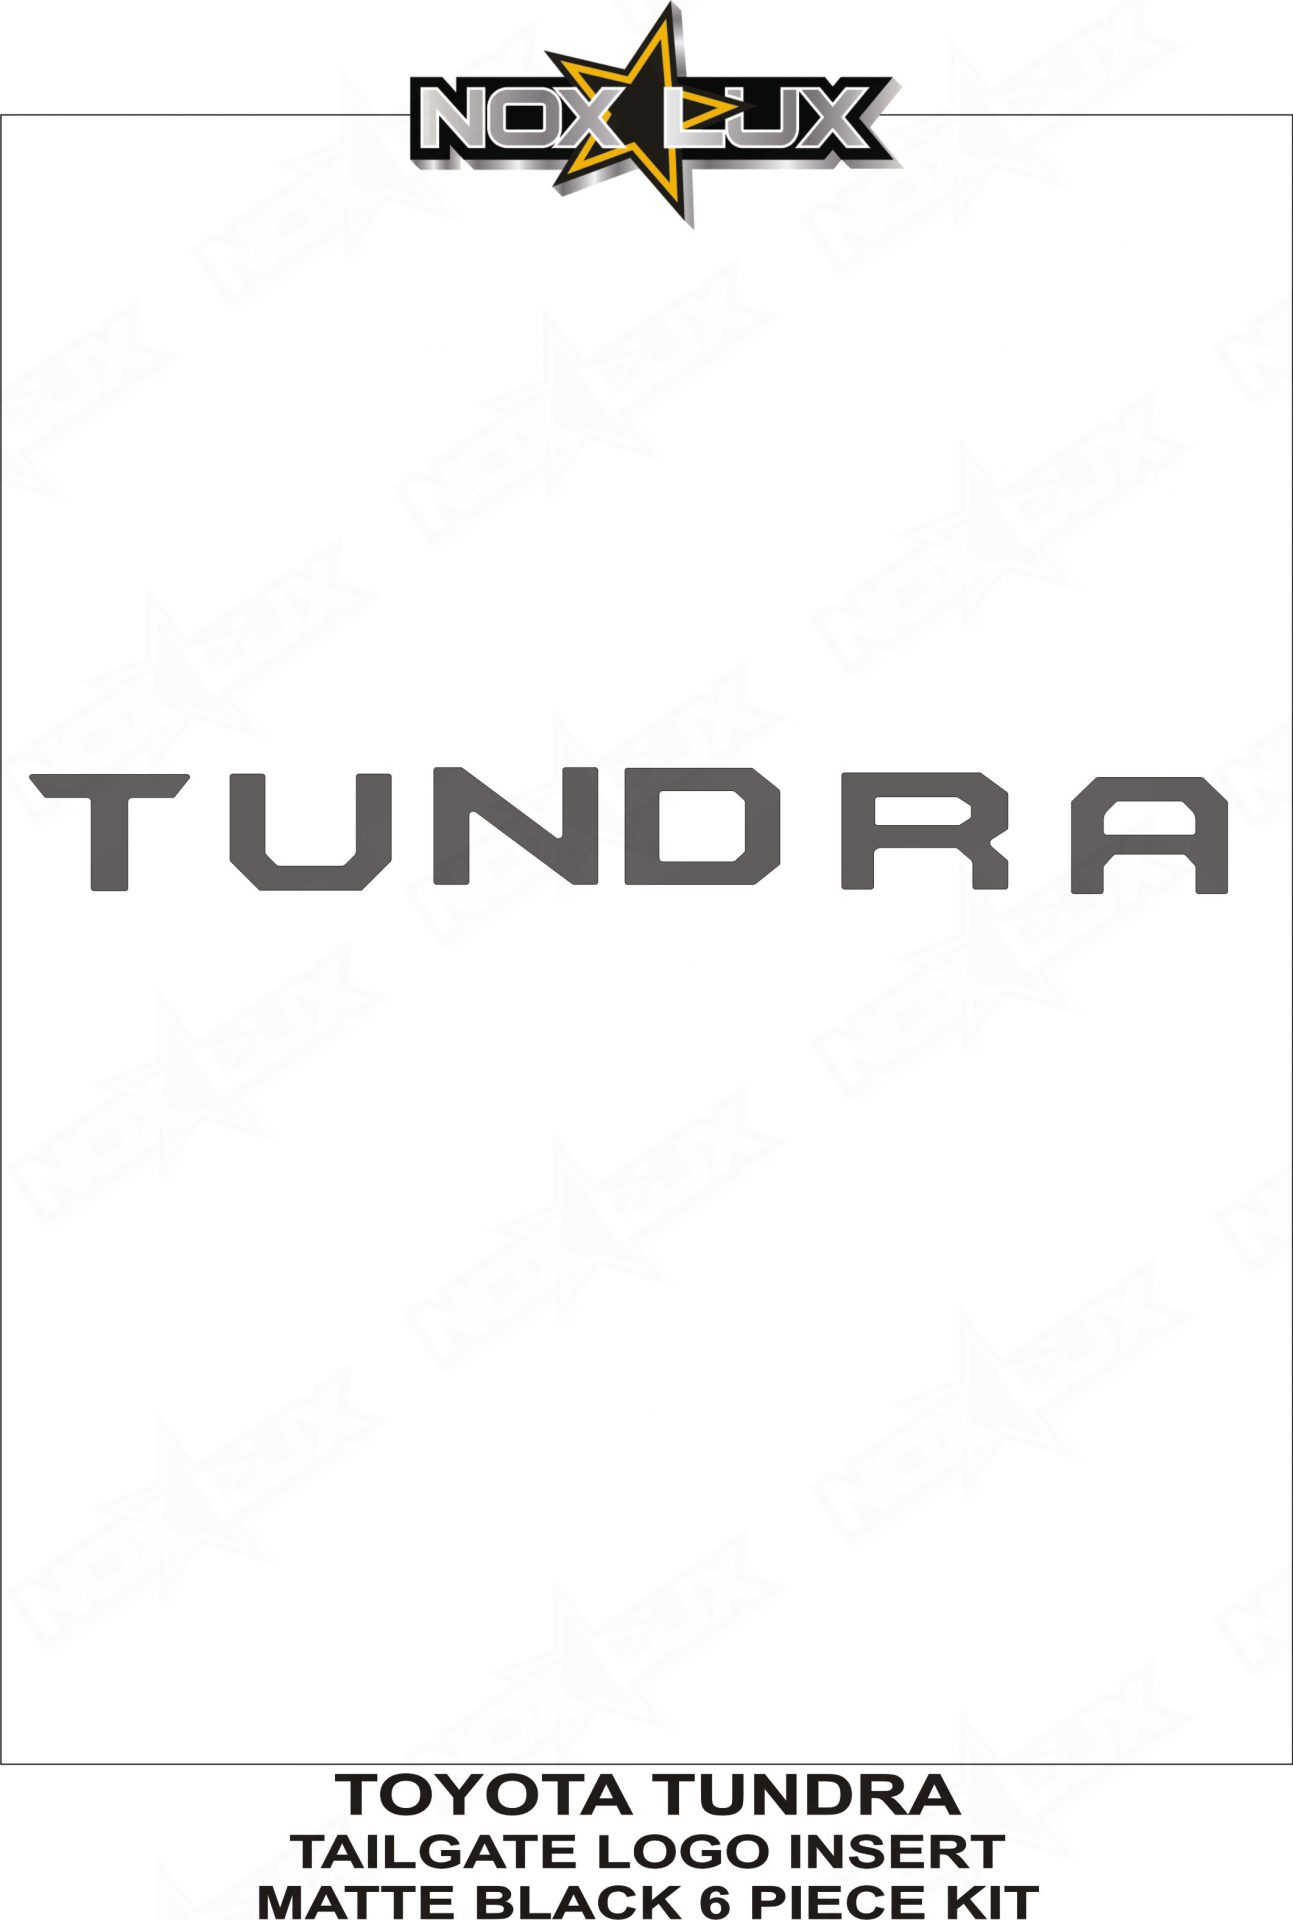 toyota tundra logo vector. tundra tailgate logo insert matte black shadow sheet nox lux toyota vector t